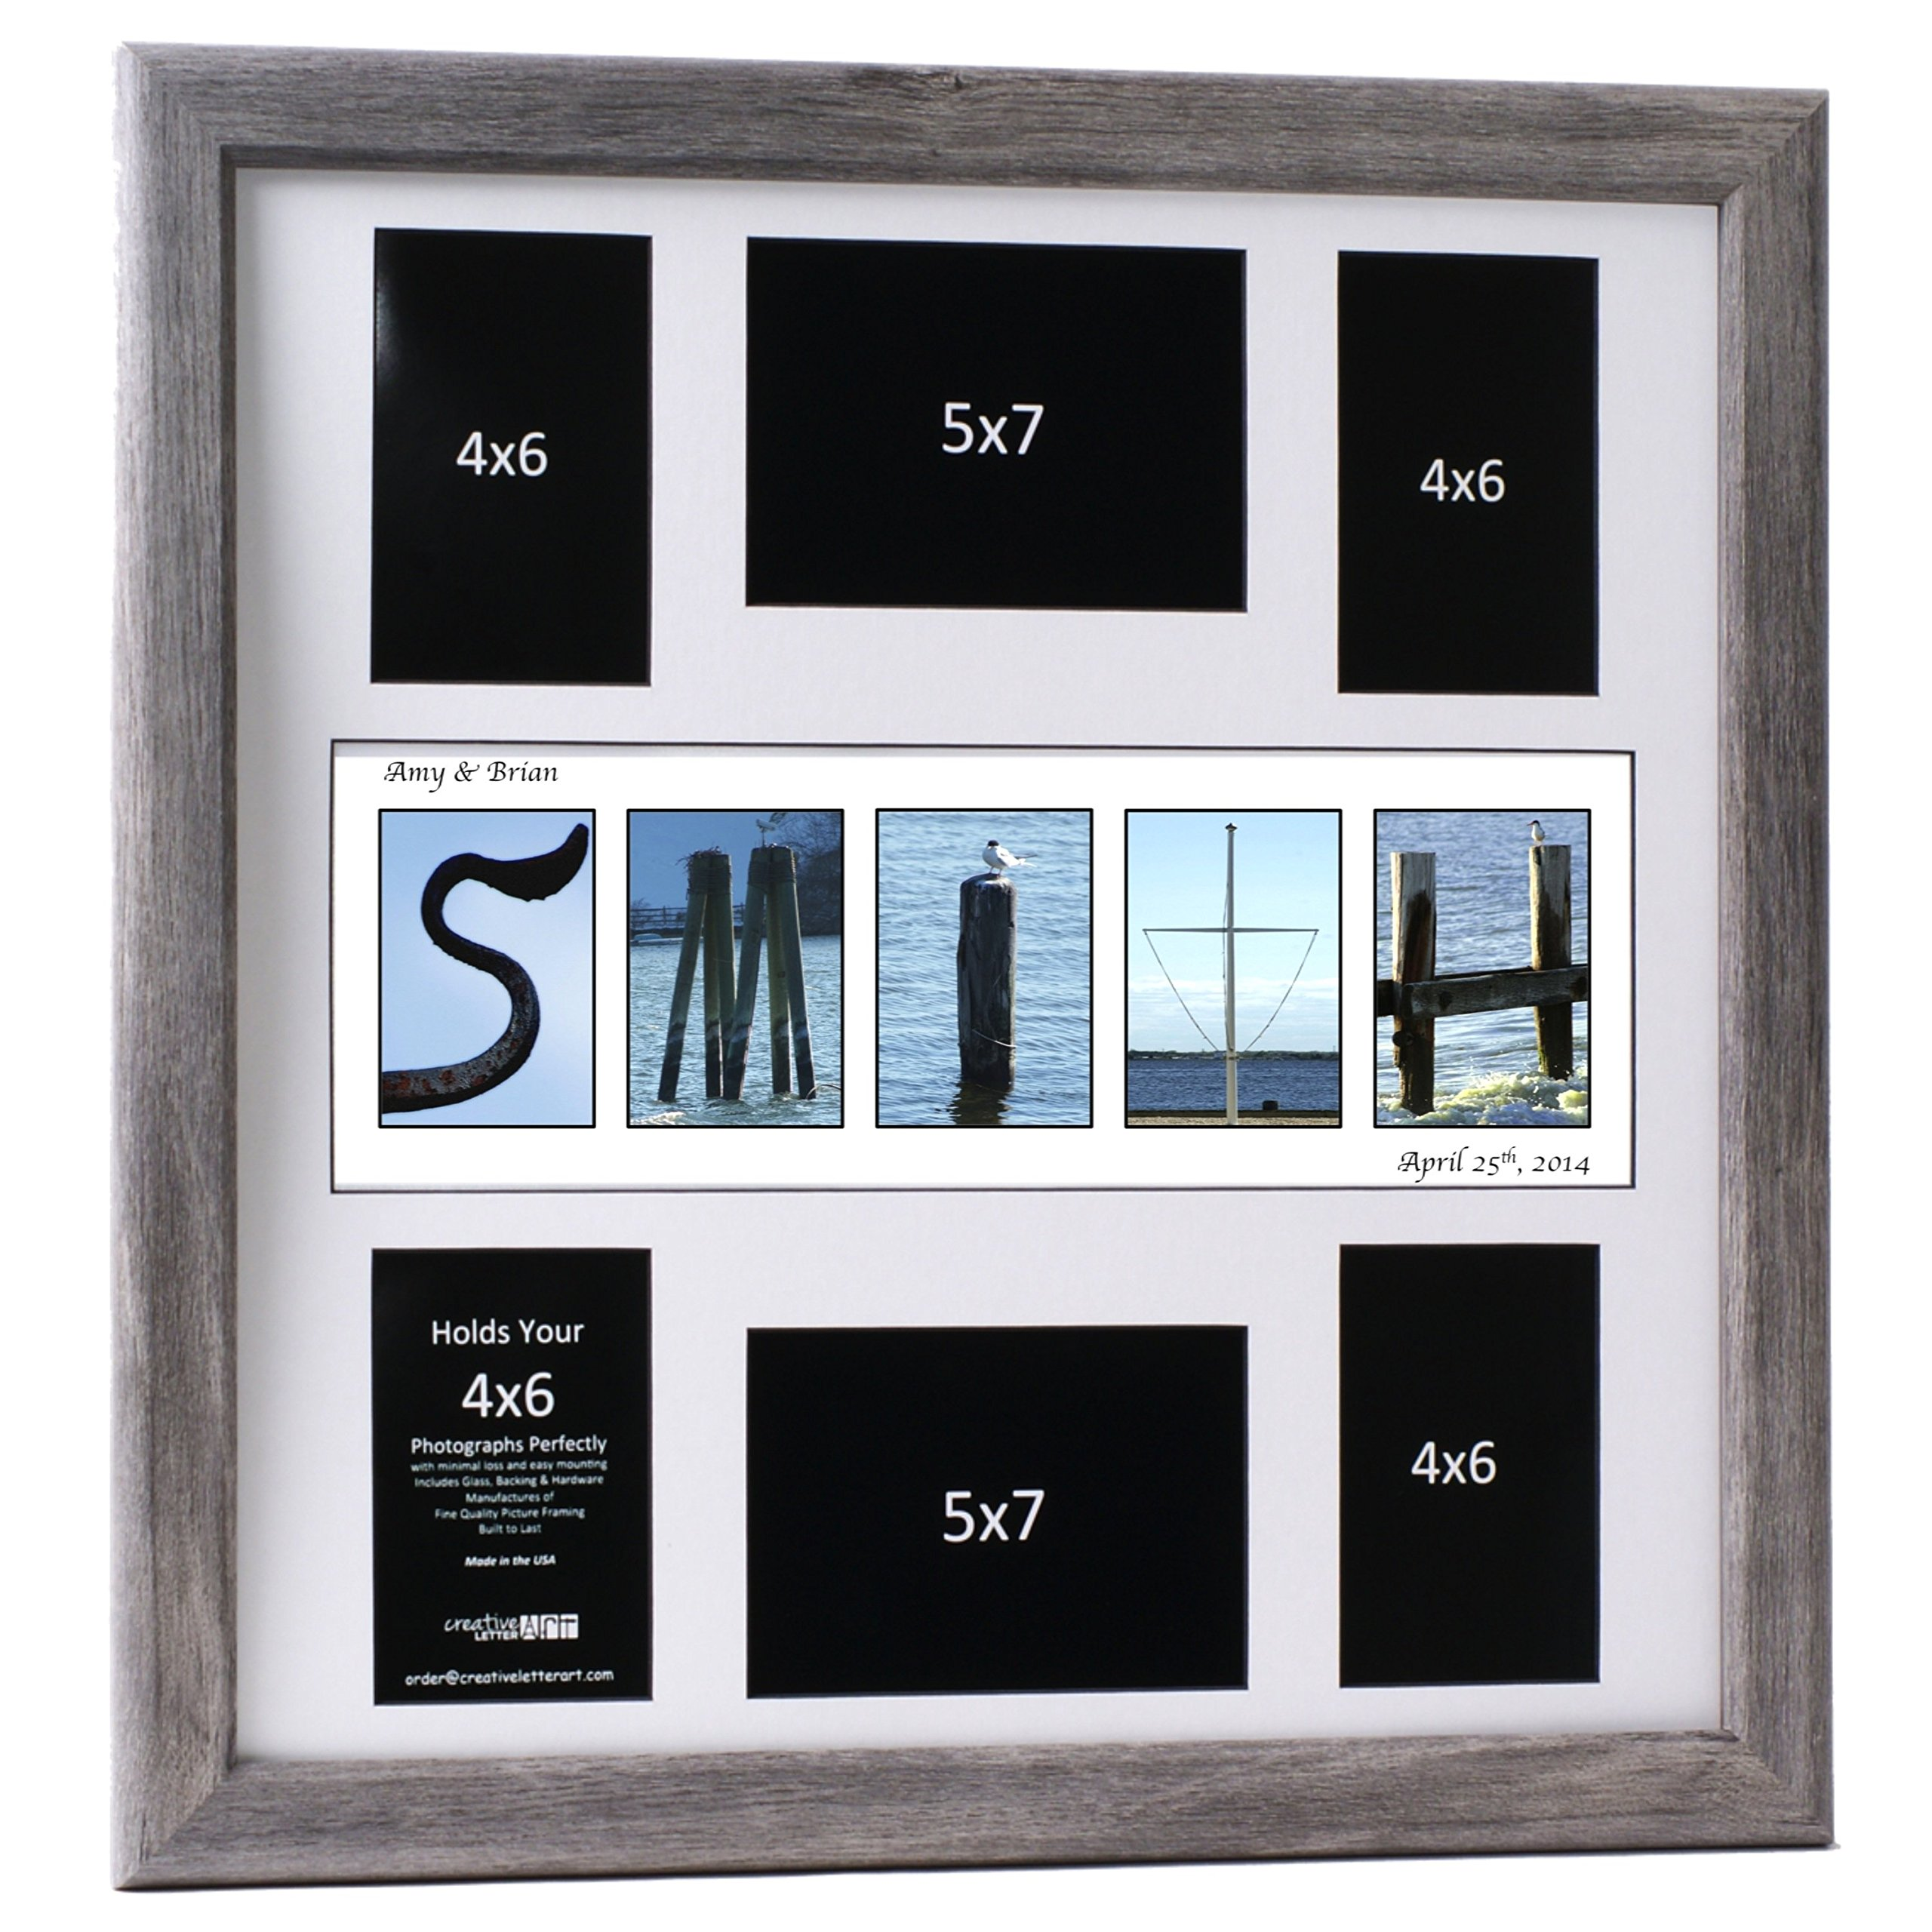 Creative Letter Art� - Personalized 20 by 20 inch Framed Beach and Nautical Related Name Collage which holds 4x6 and 5x7 inch Photographs with Wedding Registry Mat